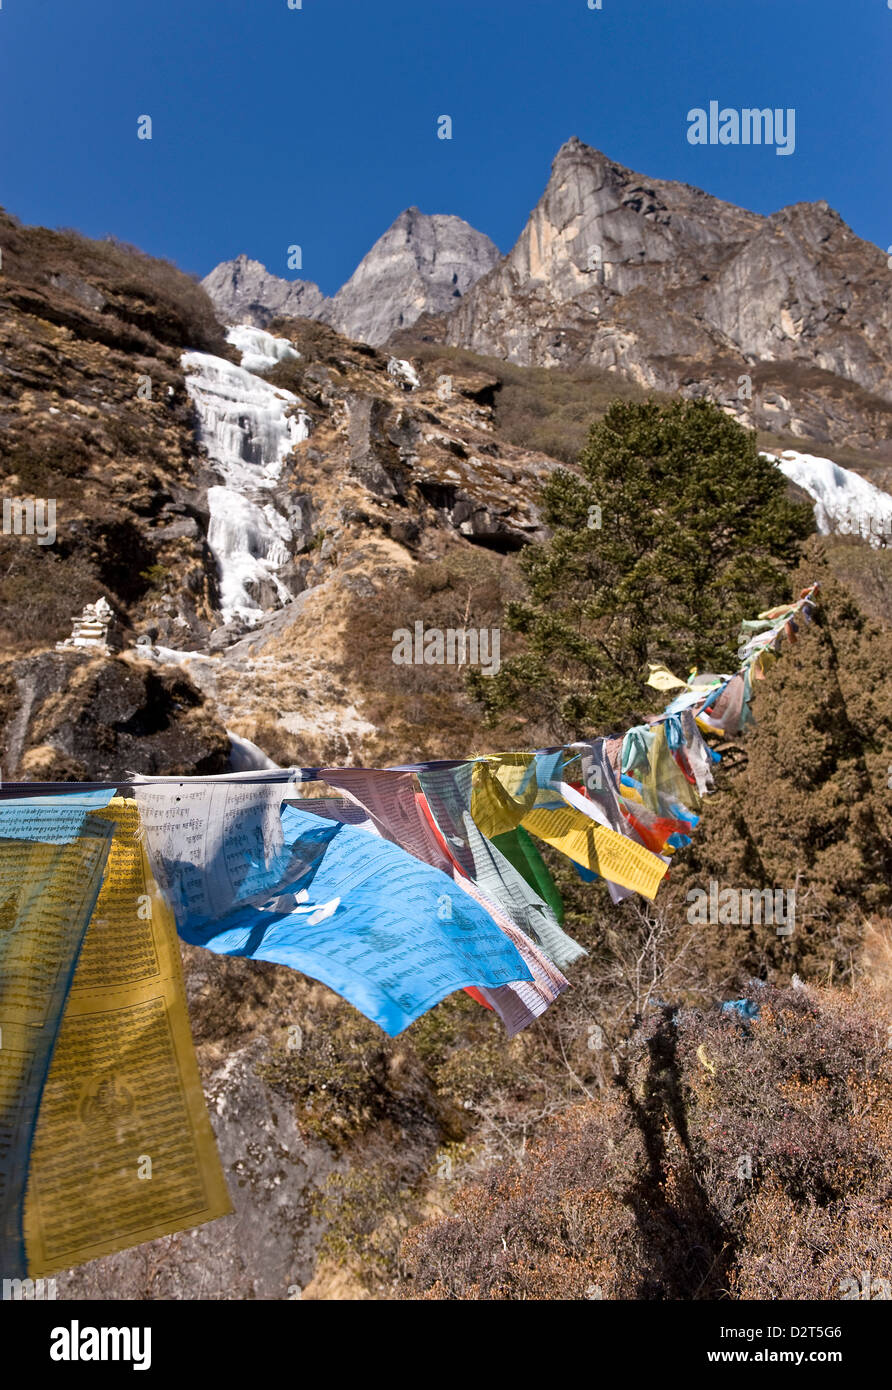 Prayer flags, Dudh Kosi Valley, Solu Khumbu (Everest) Region, Nepal, Himalayas, Asia - Stock Image